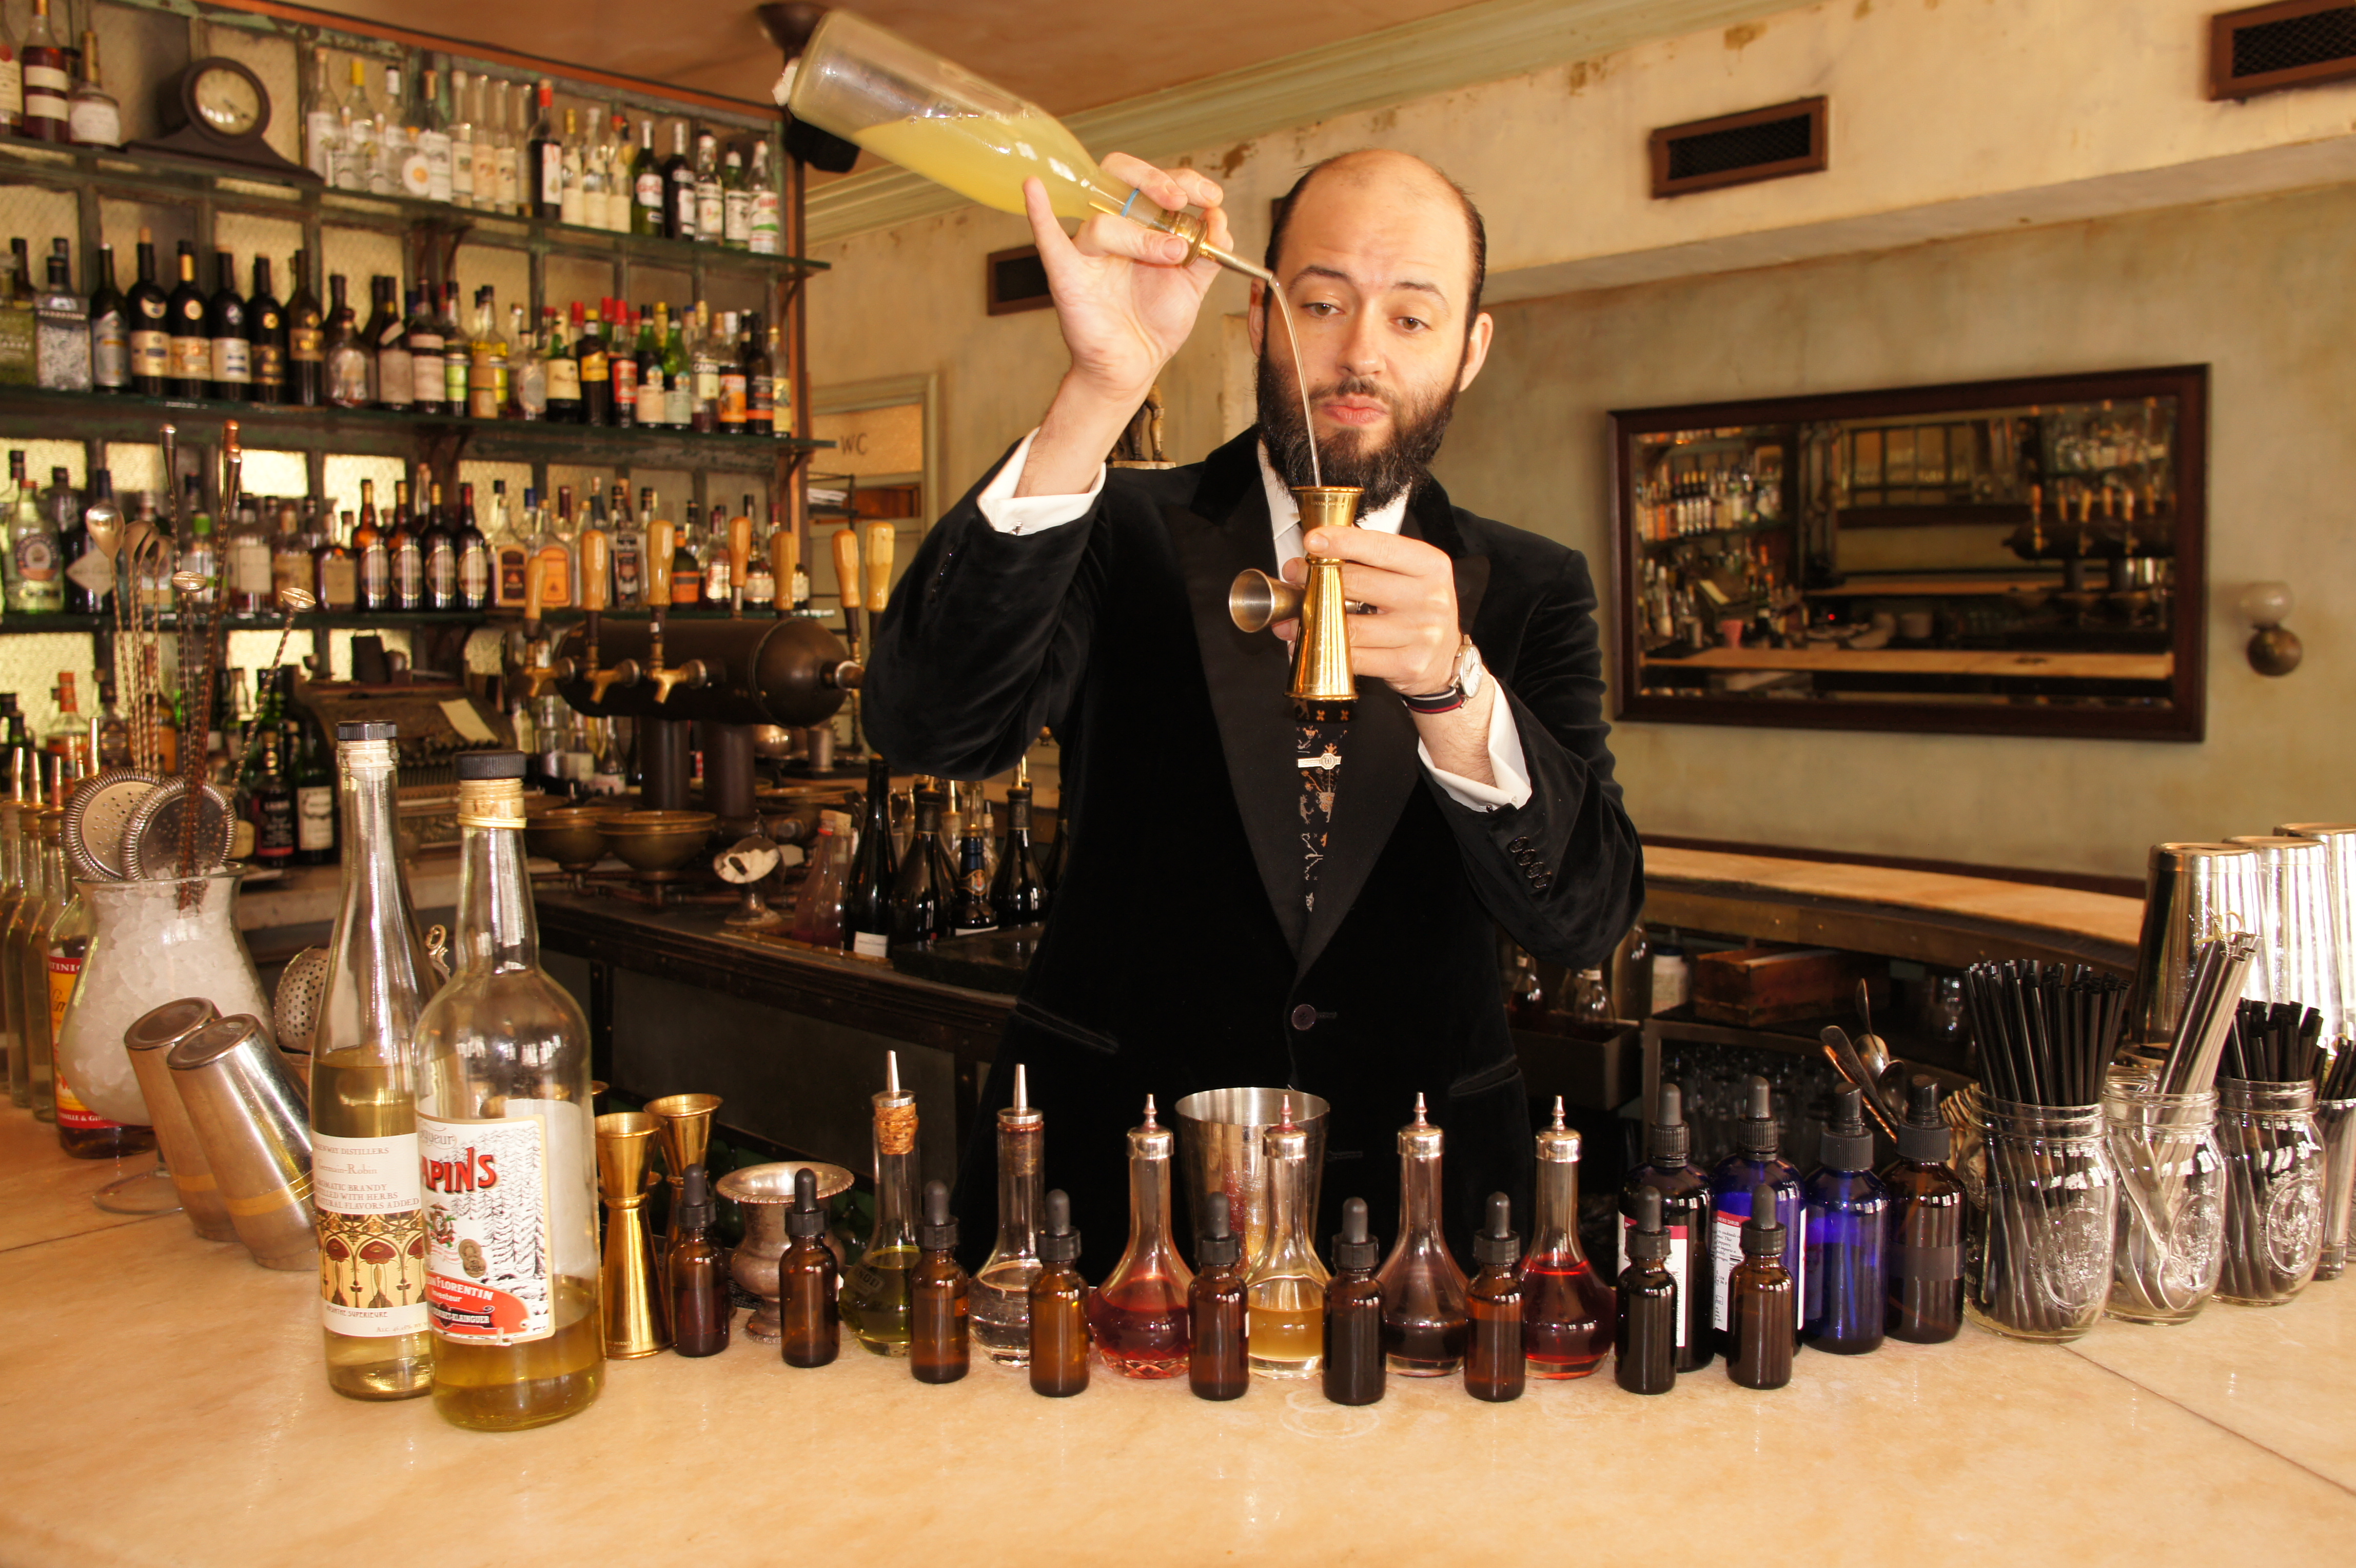 Absinthe & Hospitality with Will Elliott at Maison Premiere